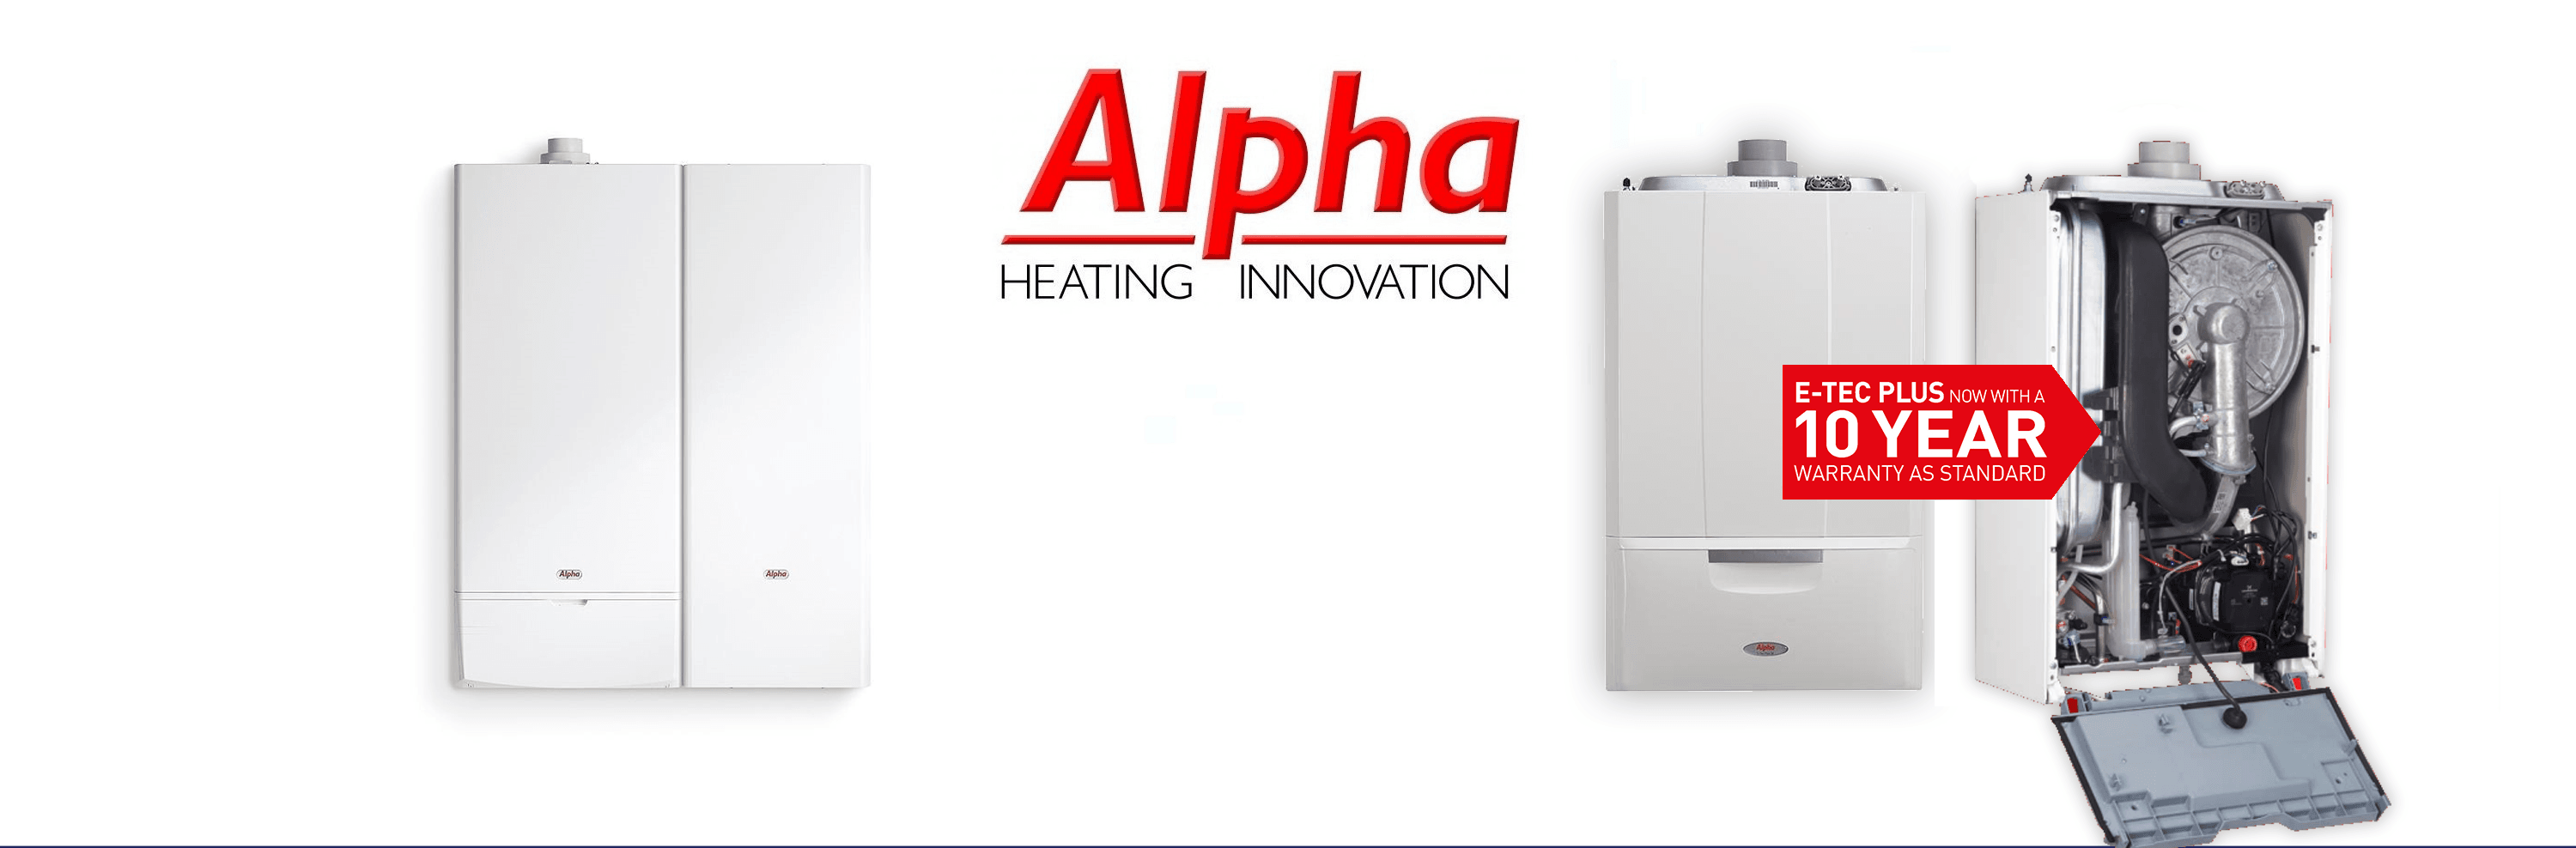 Alpha-boiler-main-page-1_amended-3